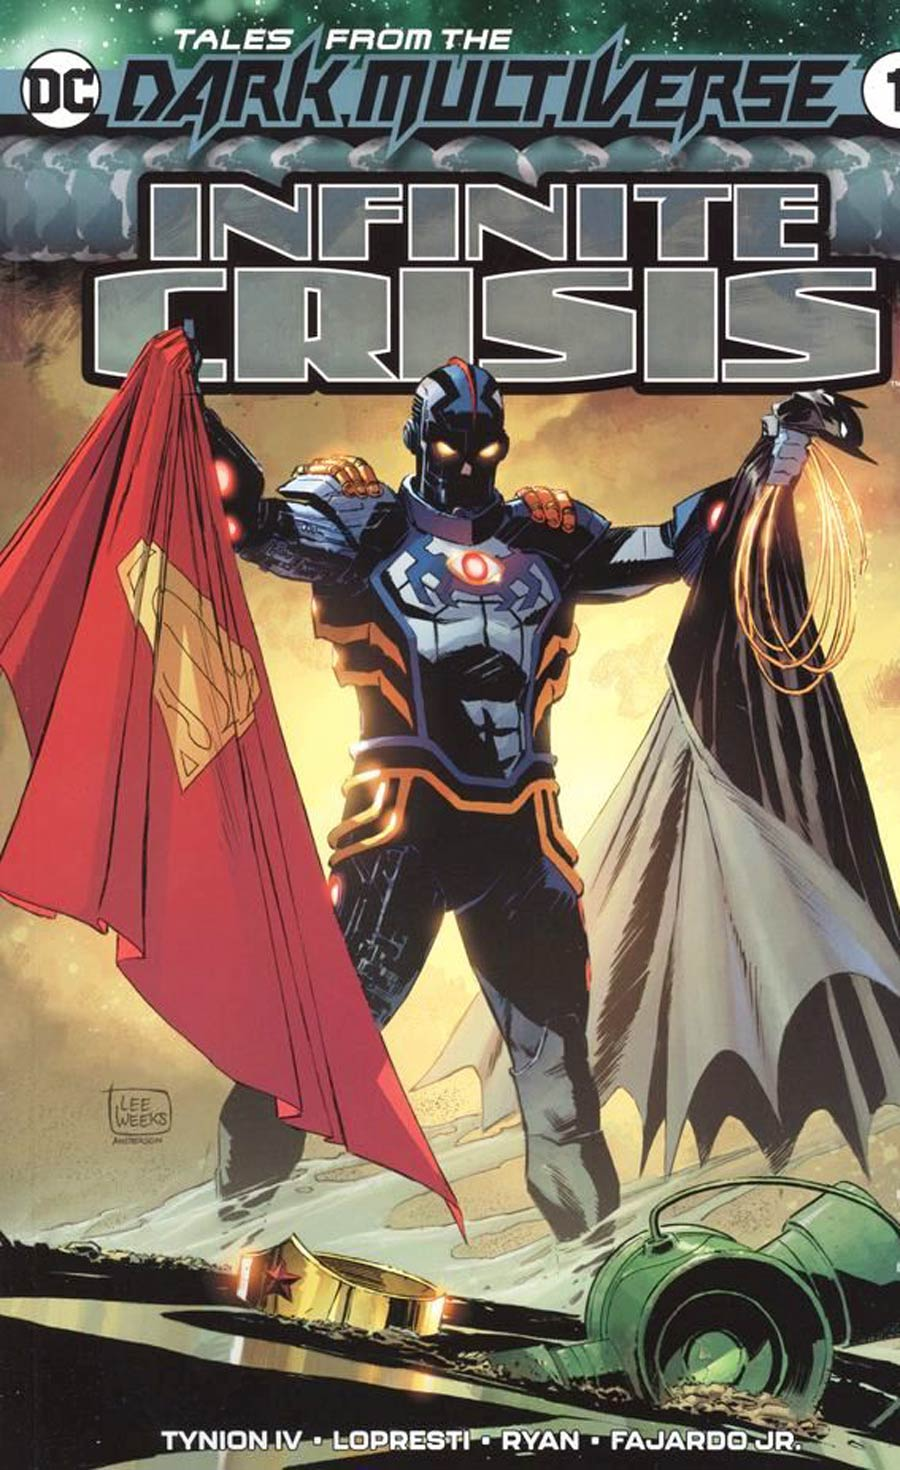 Tales From The Dark Multiverse Infinite Crisis #1 Cover A Regular Lee Weeks Cover